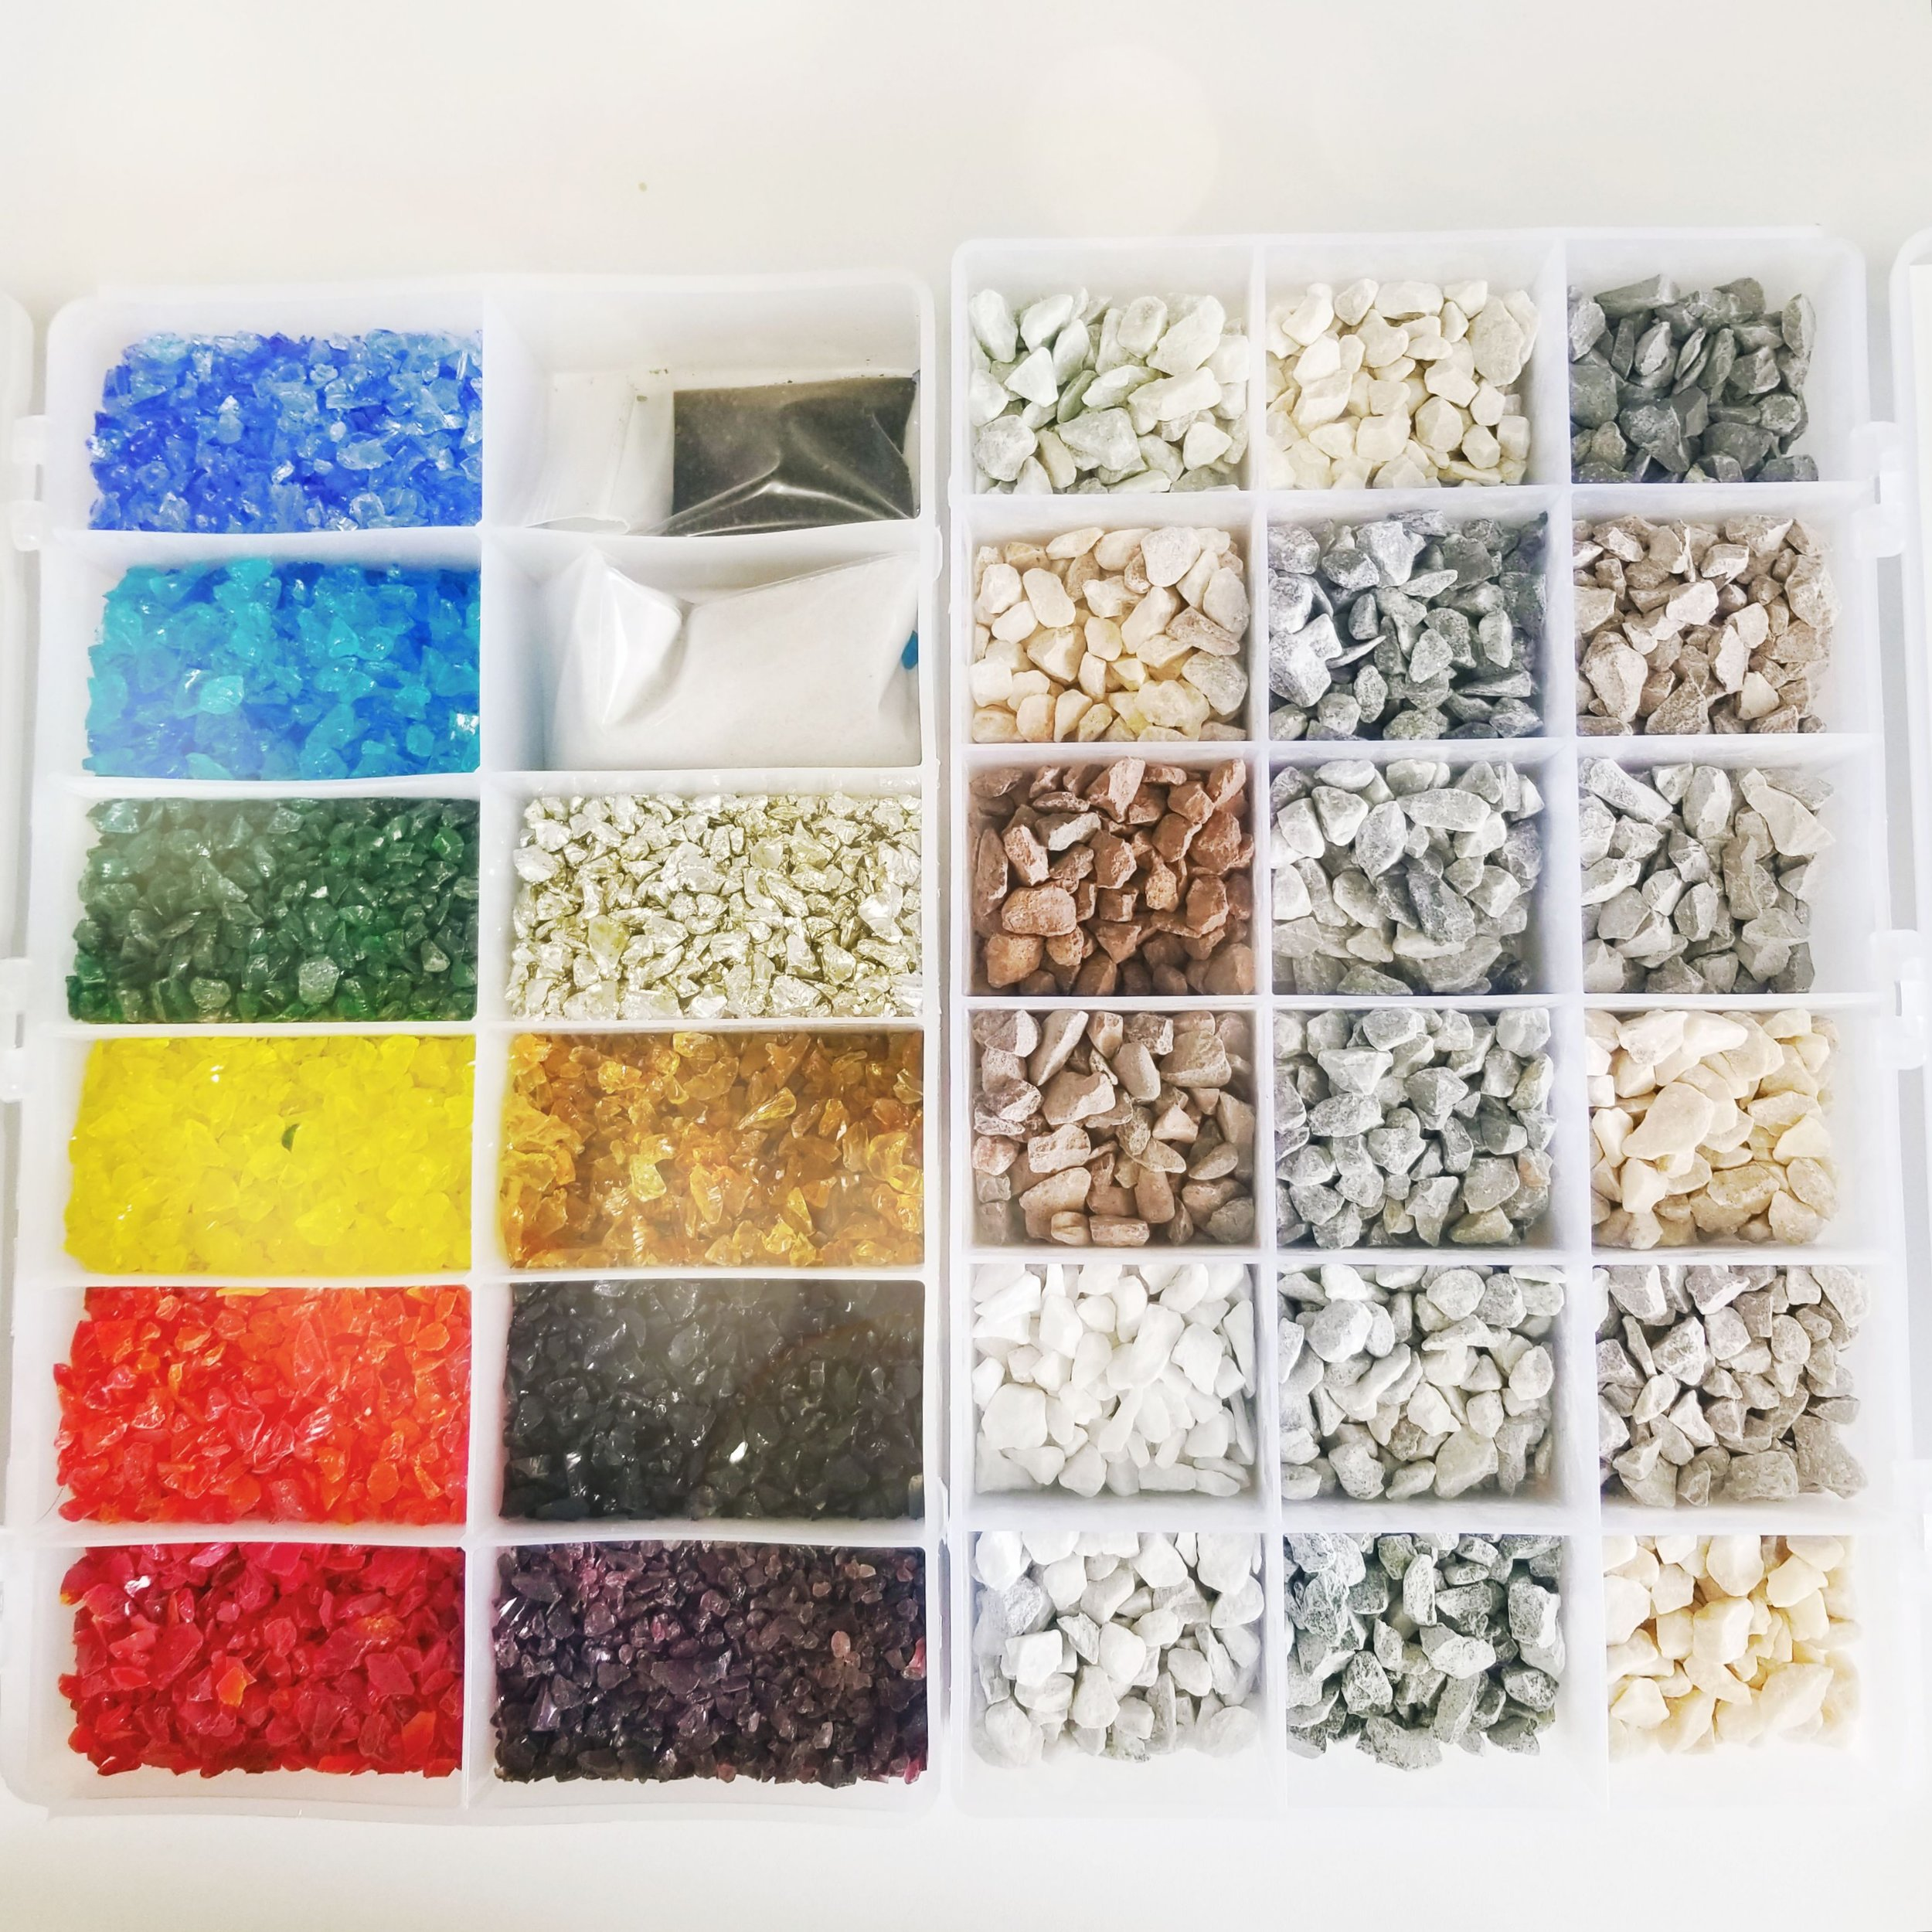 Just a few options of glass and stone chips for a terrazzo floor